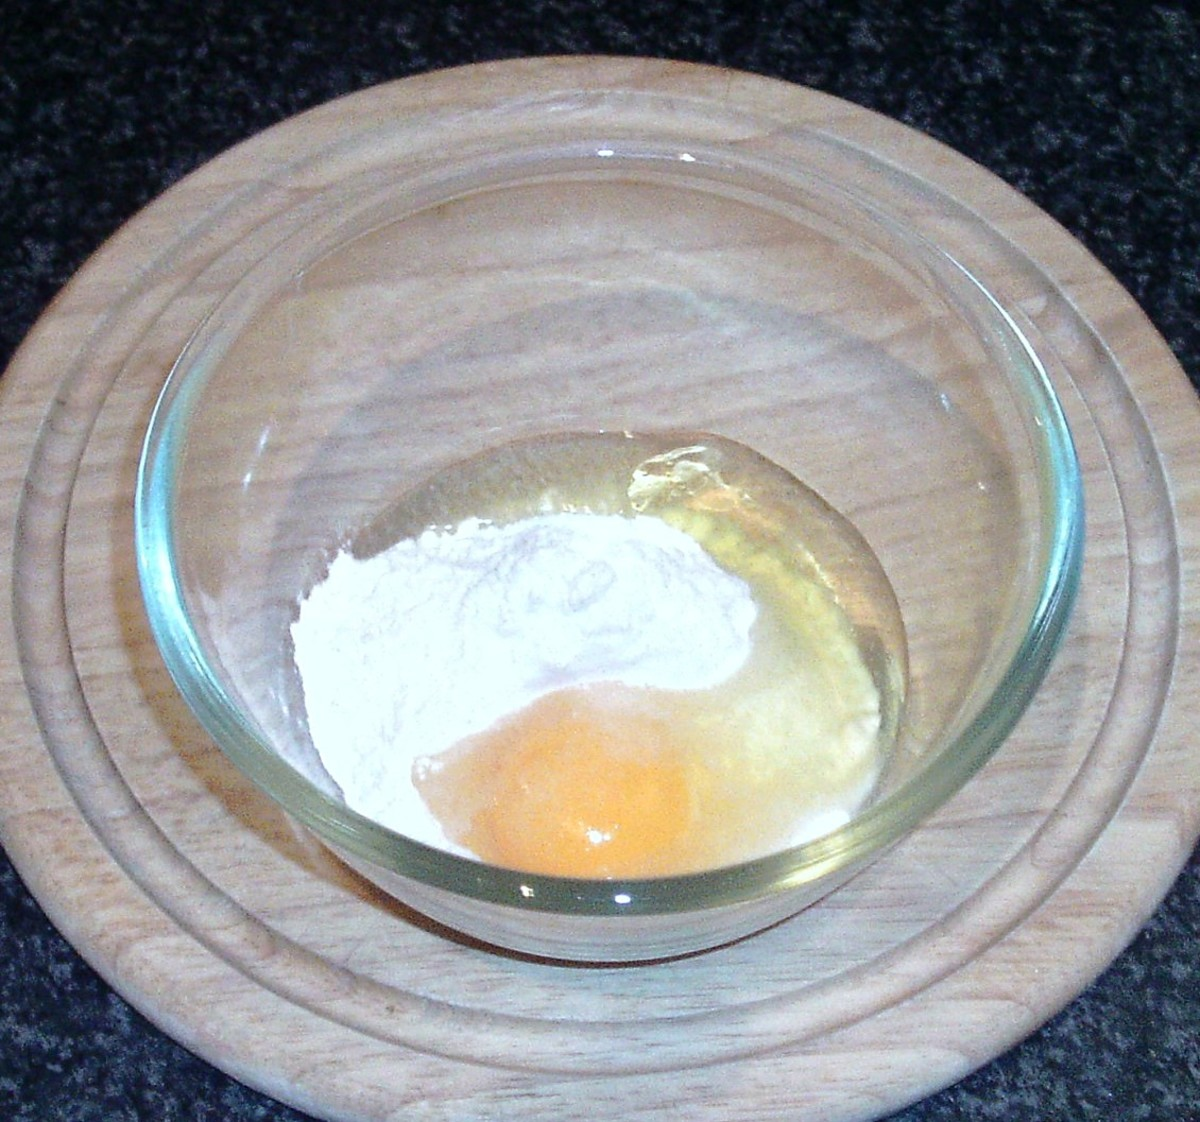 Batter ingredients are added to small bowl